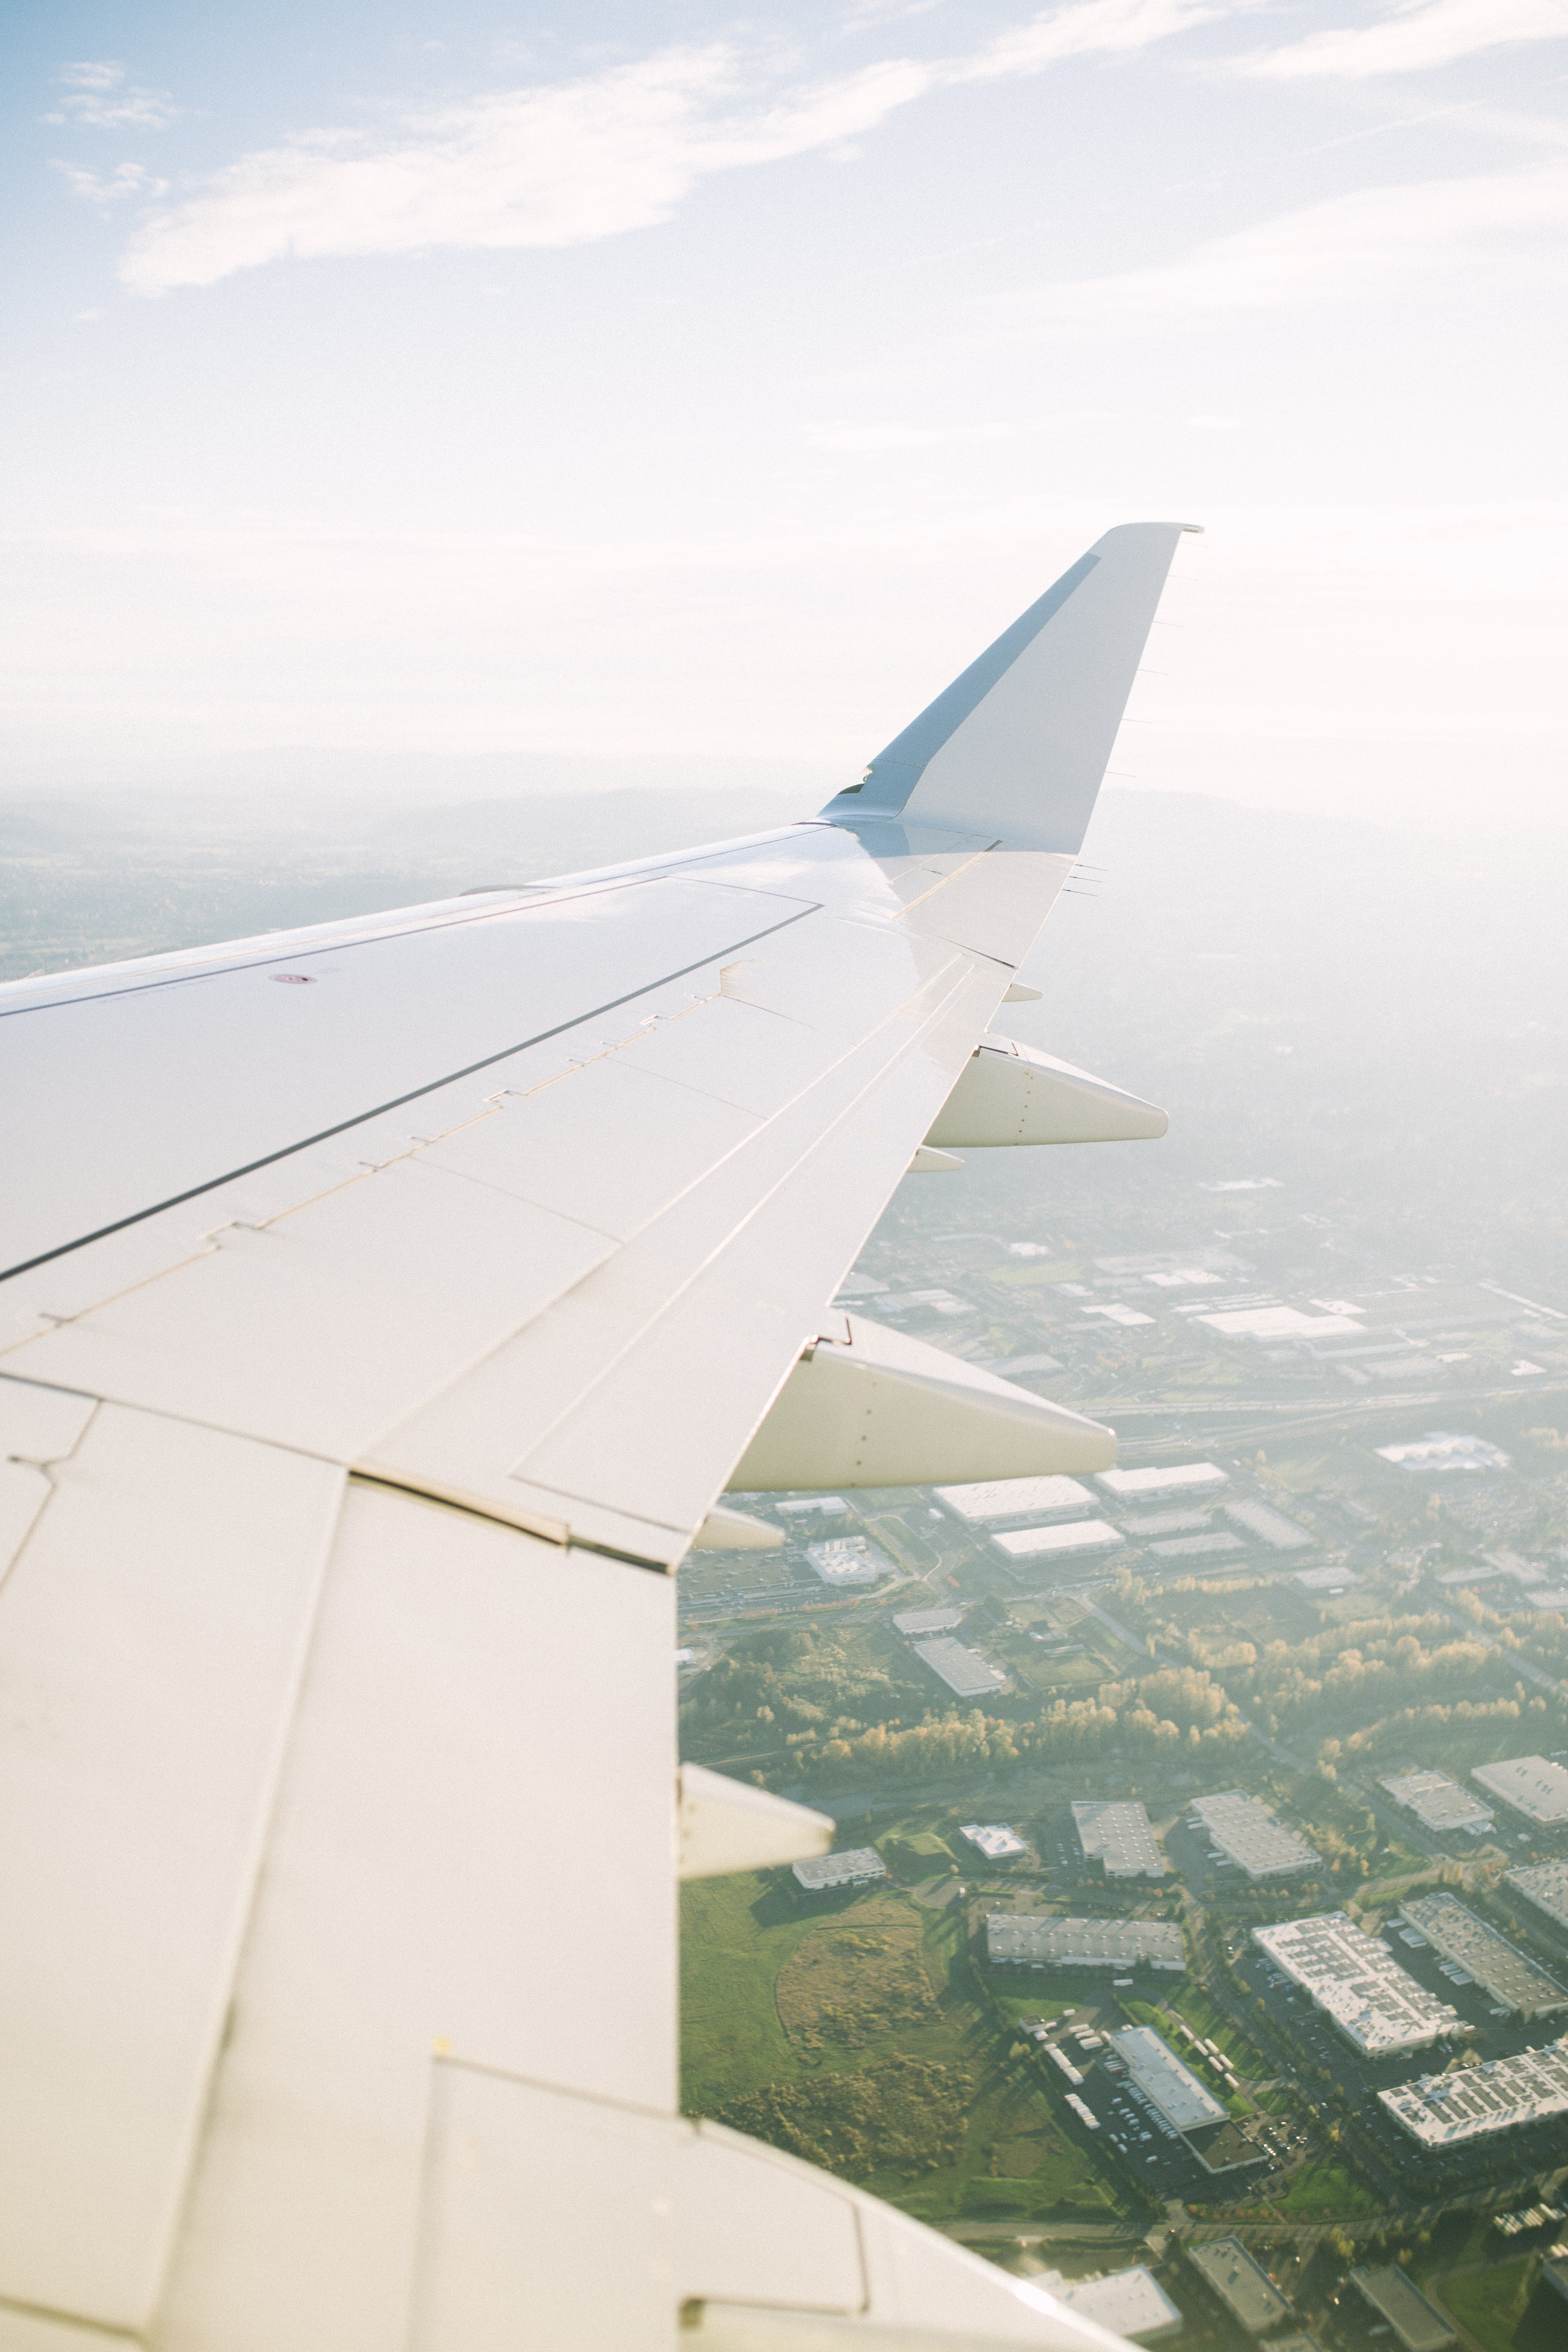 A view from an airplane window on its wing and a town underneath